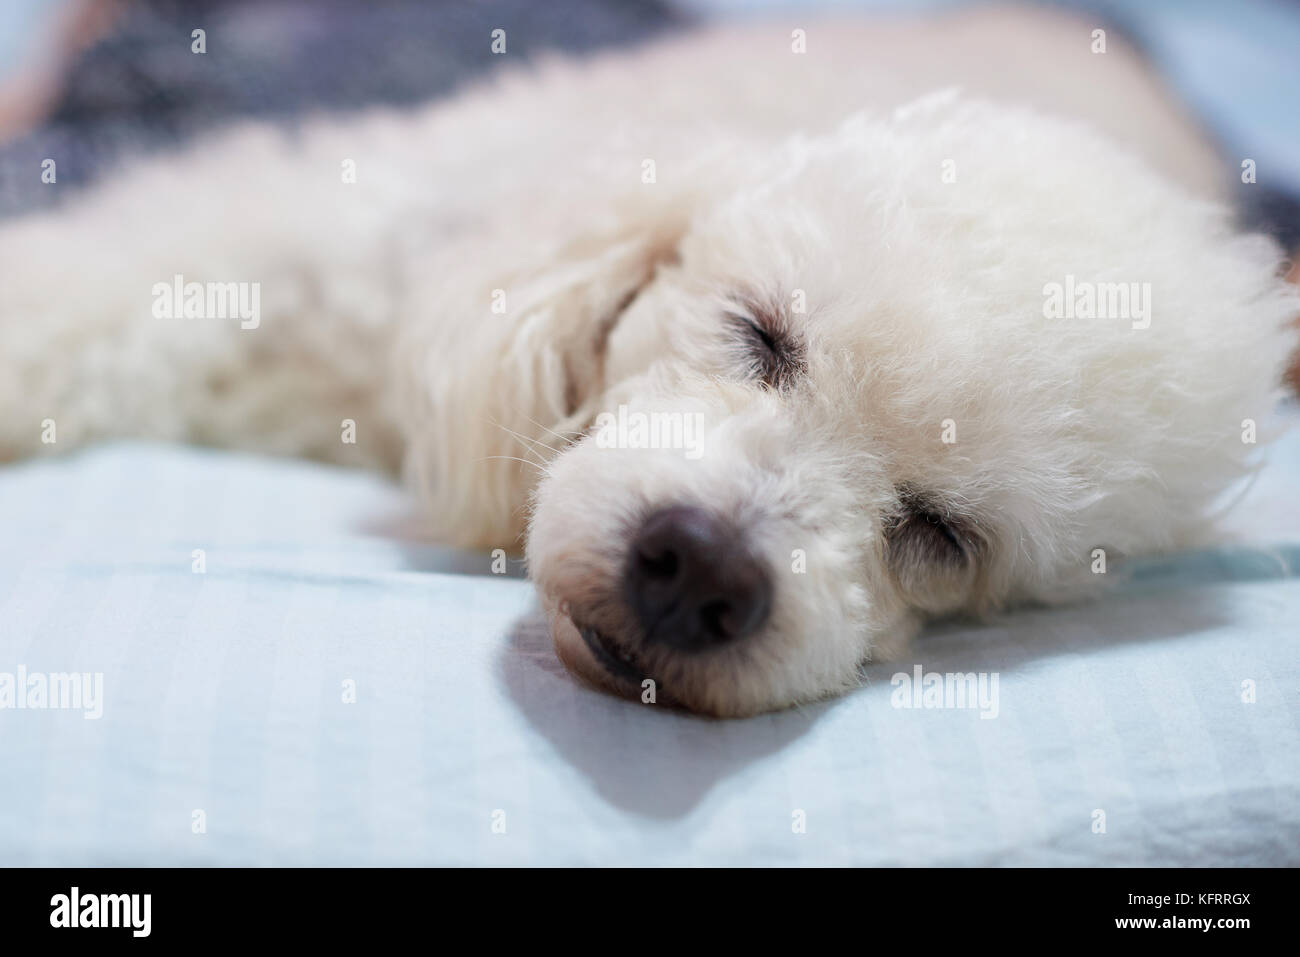 Close Up Toy Poodle Puppy Stock Photos Amp Close Up Toy